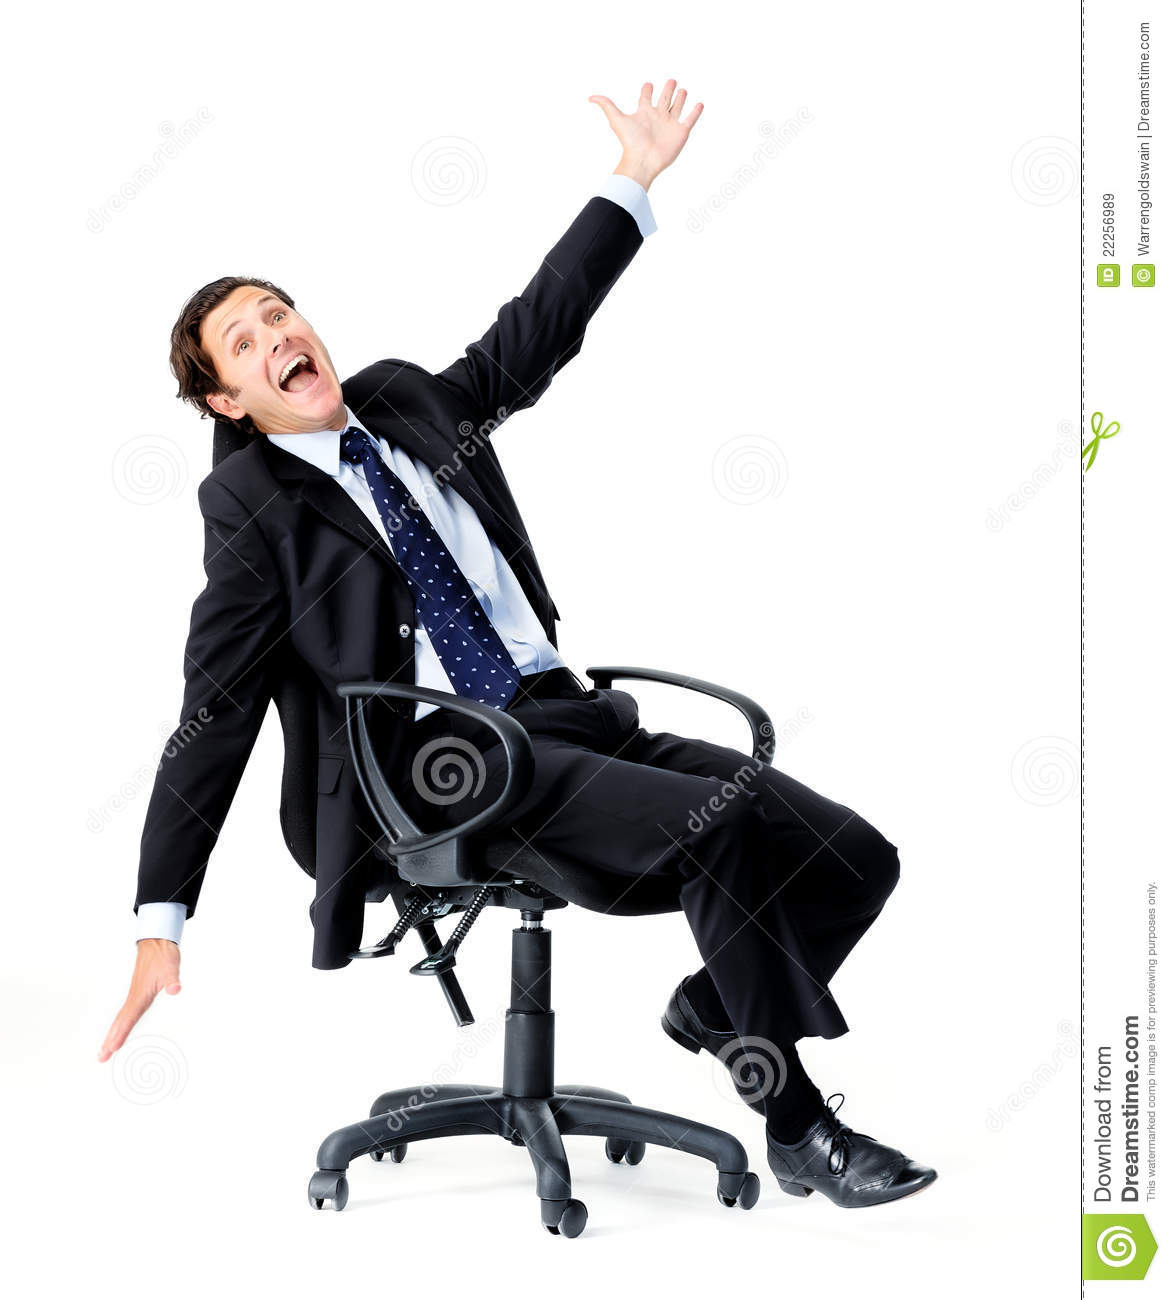 Fun Office Chairs Businessman Having Fun Royalty Free Stock Images Image